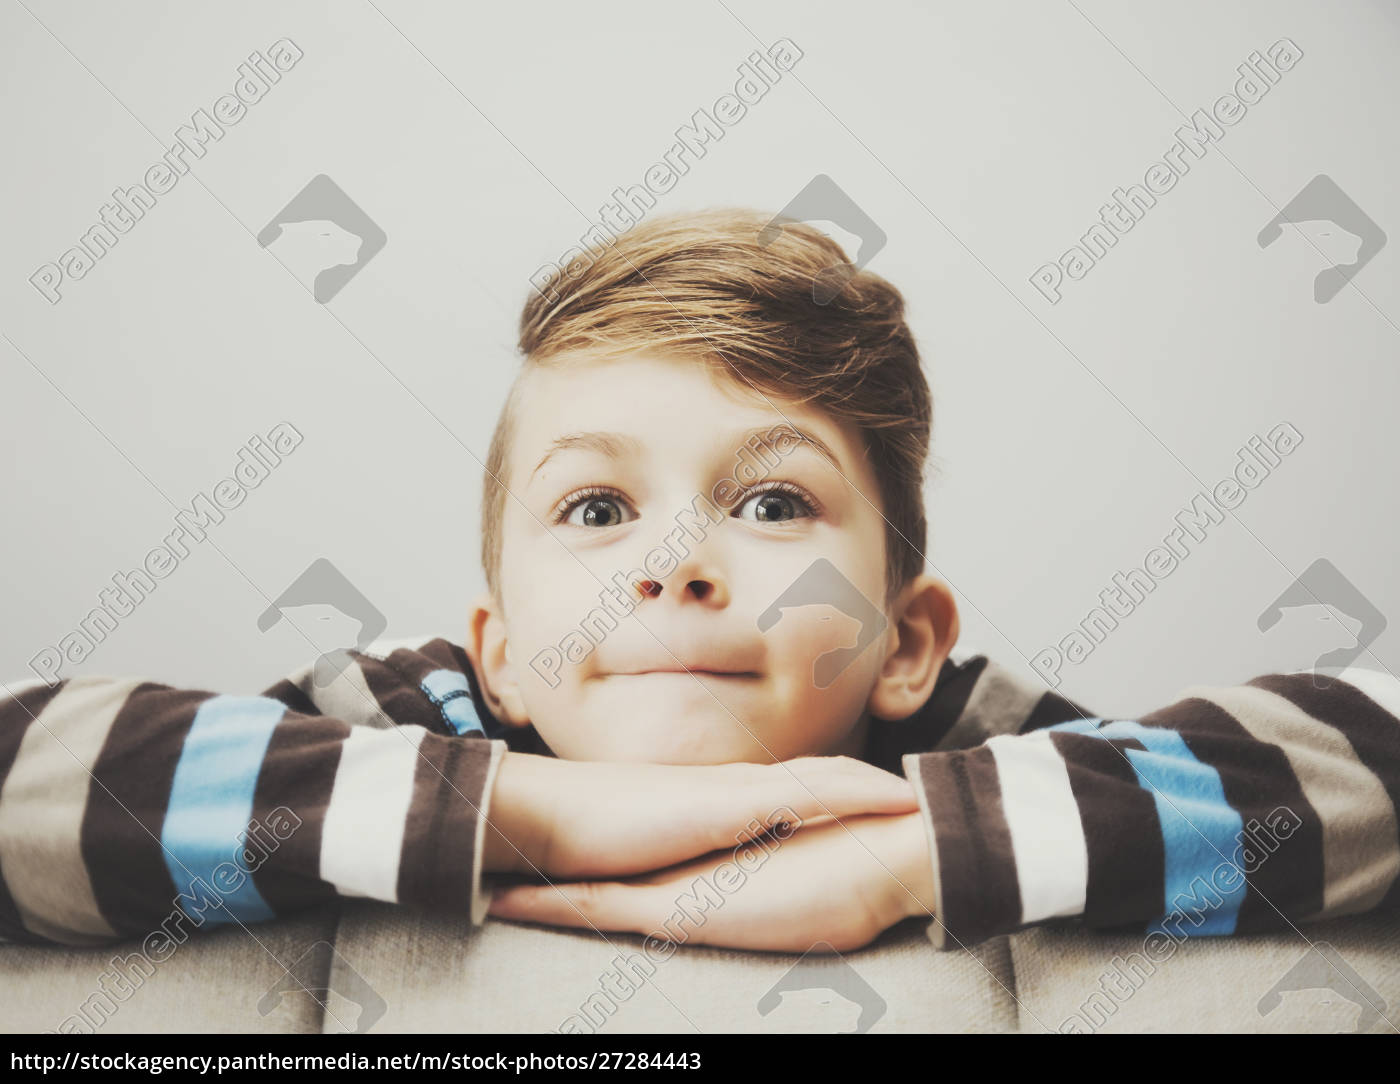 portrait, of, a, young, boy, looking - 27284443